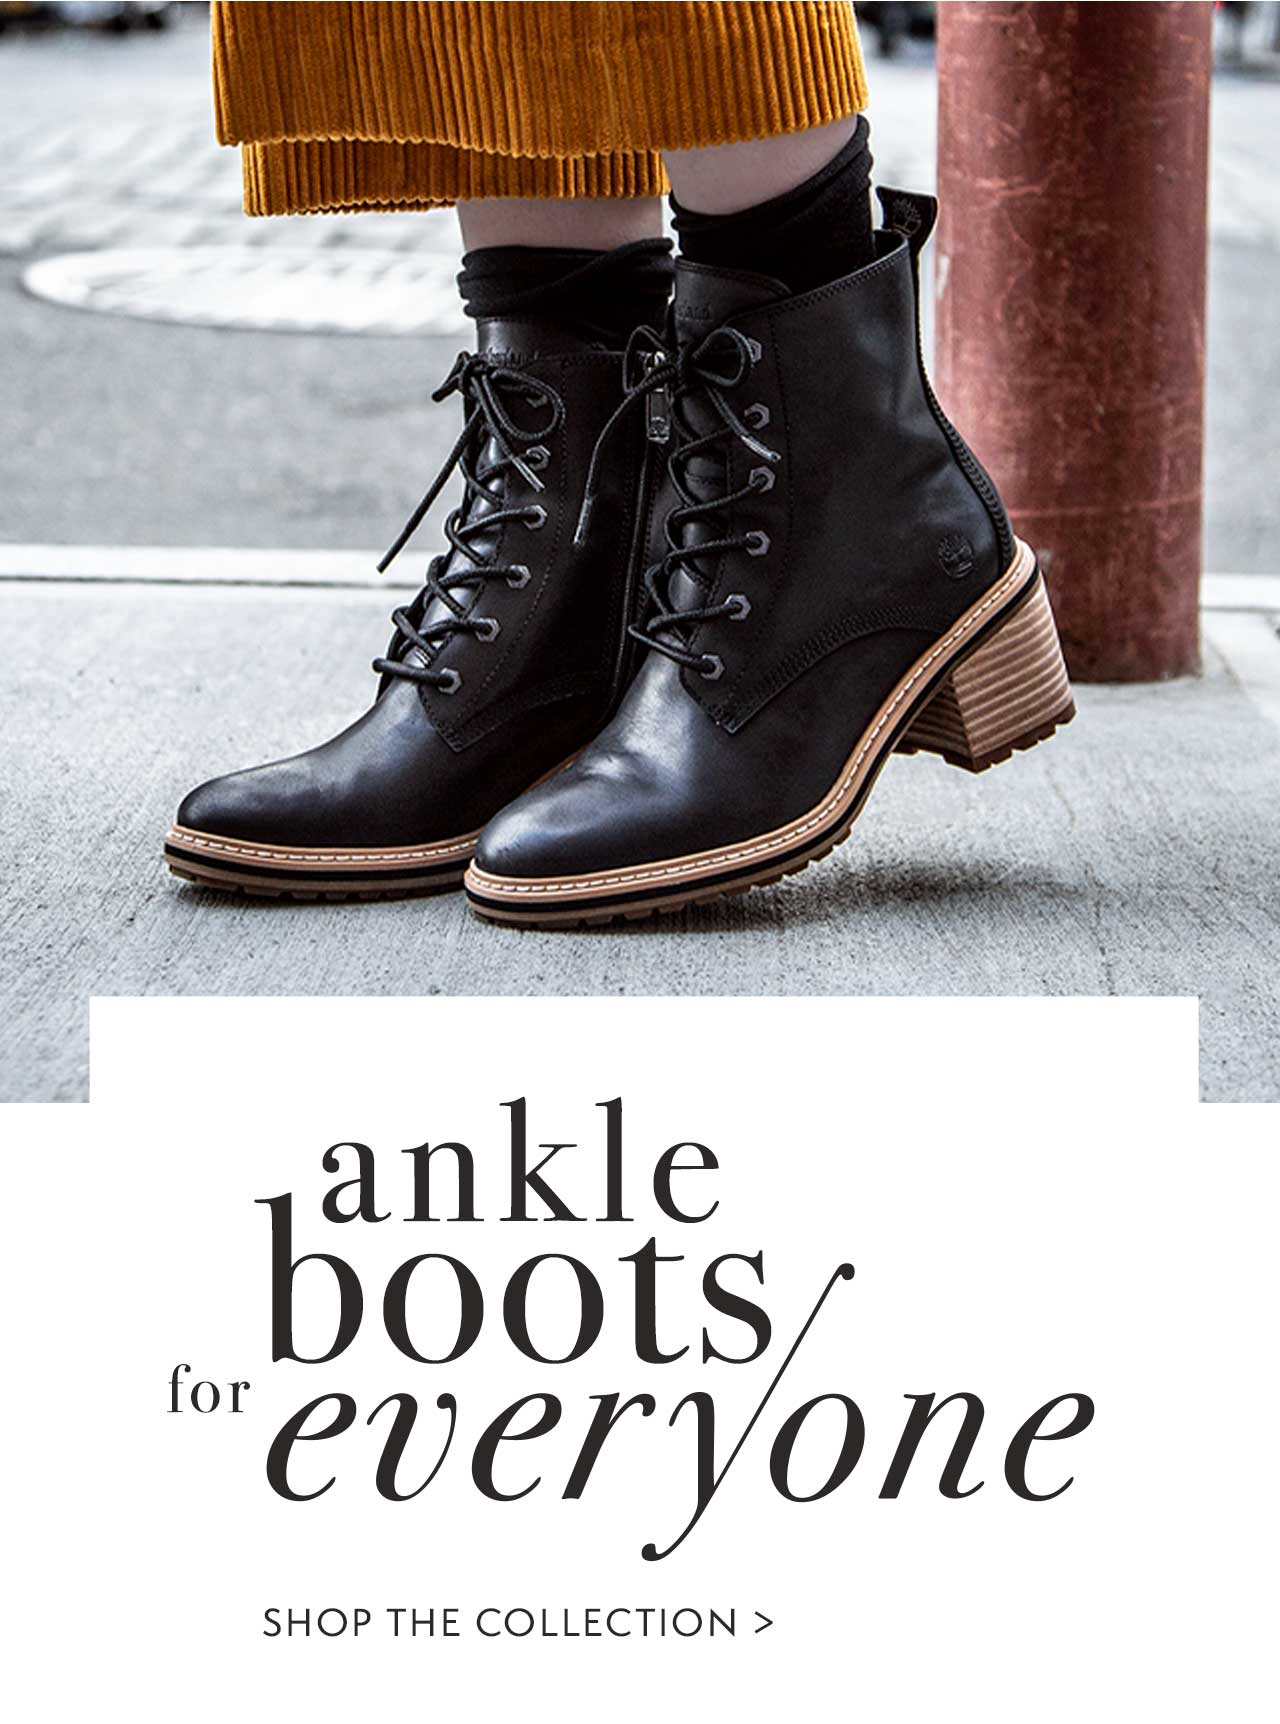 Ankle boots for everyone.                                                 Shop The Collection